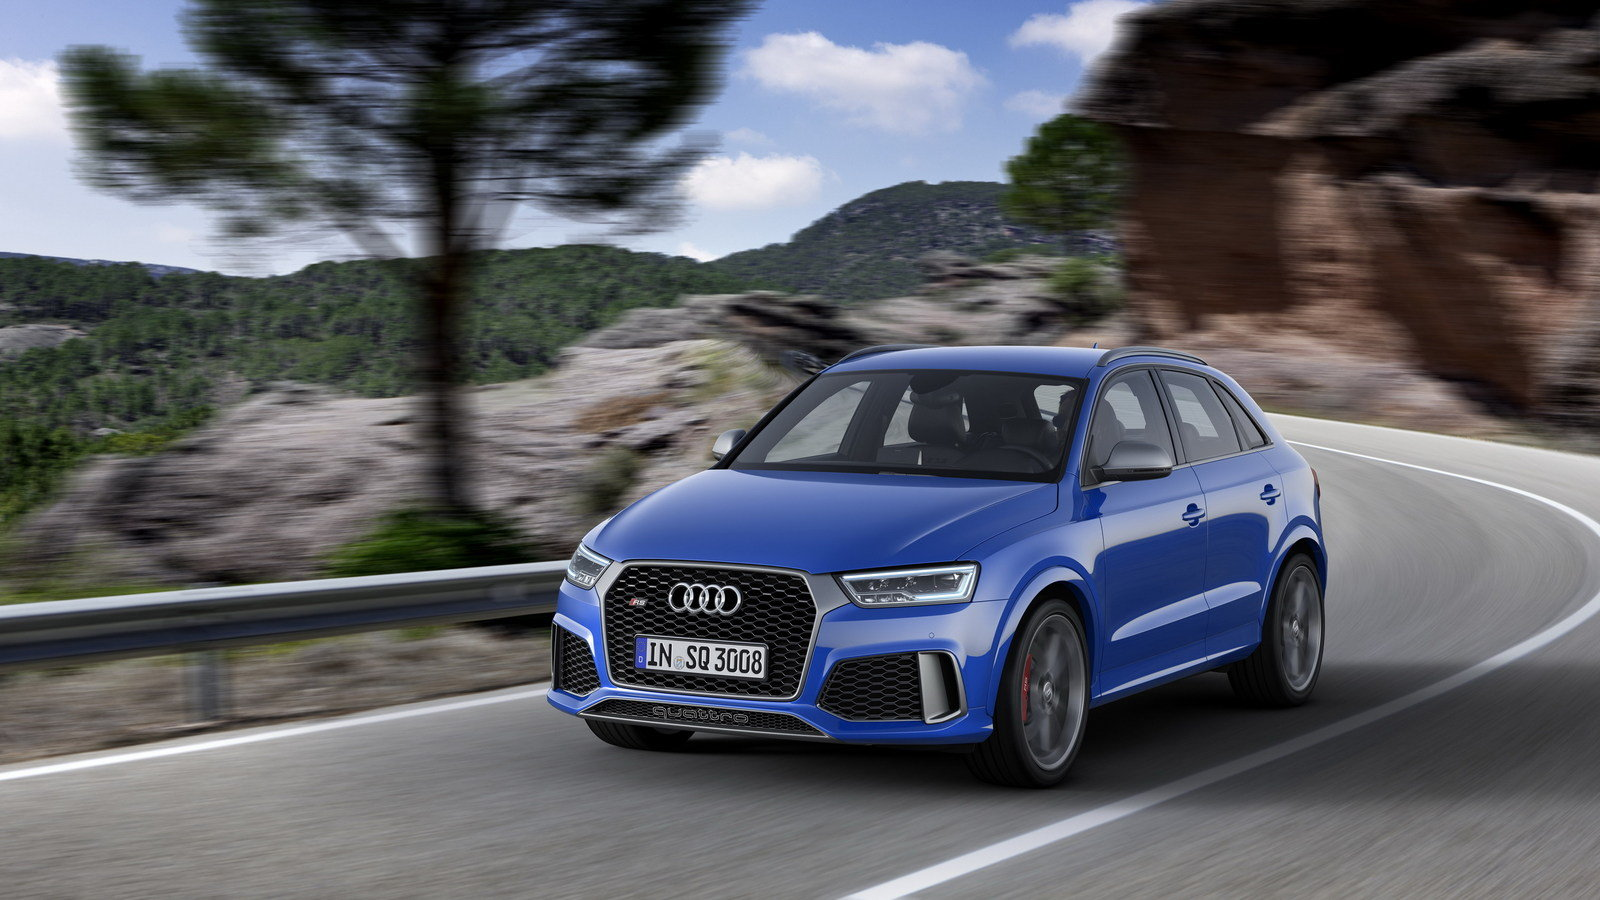 2017 audi rs q3 performance picture 664188 car review top speed. Black Bedroom Furniture Sets. Home Design Ideas